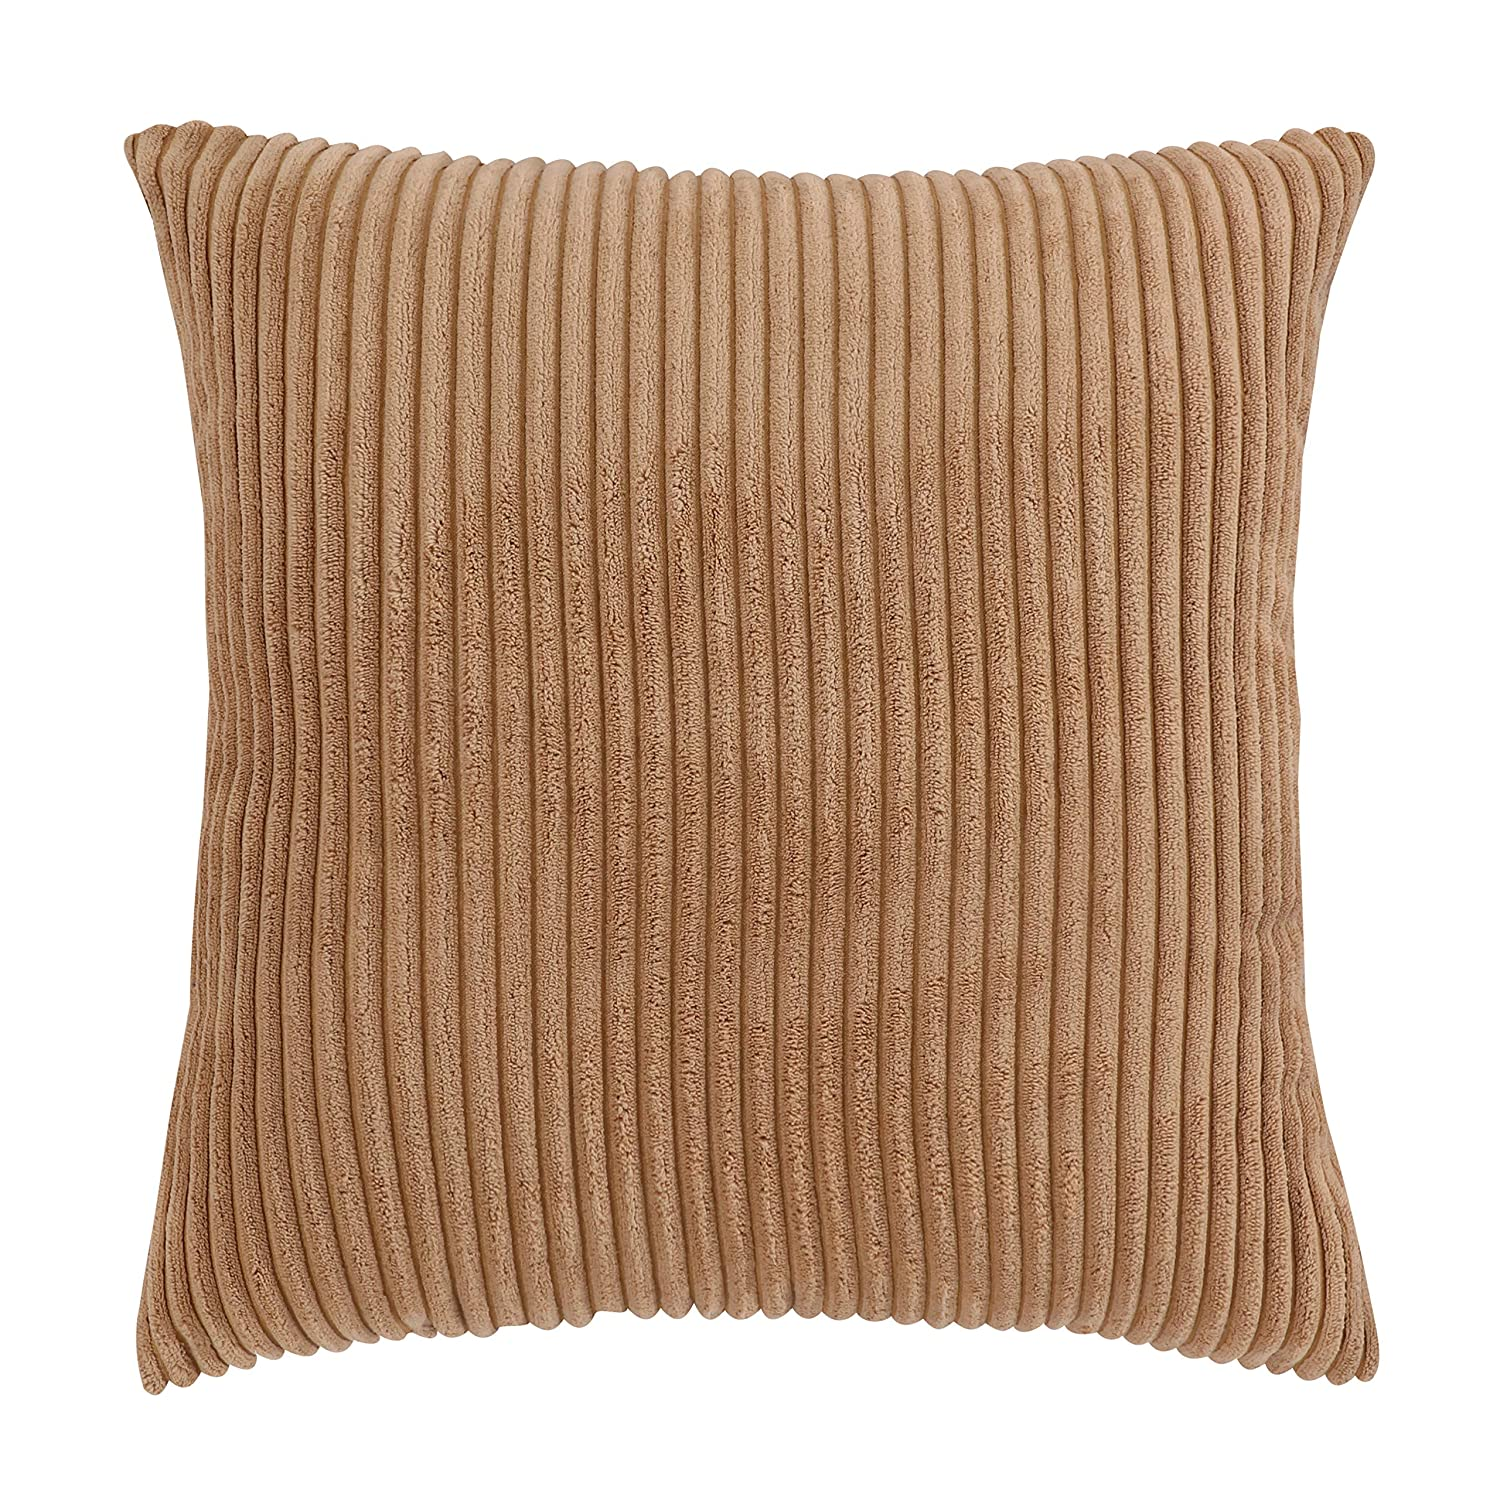 Brilliant Famibay Plush Sofa Cushion Covers 26X26 Decorative Soft Throw Pillow Case Covers With Zipper For Bed 26 X 26 Camel Andrewgaddart Wooden Chair Designs For Living Room Andrewgaddartcom